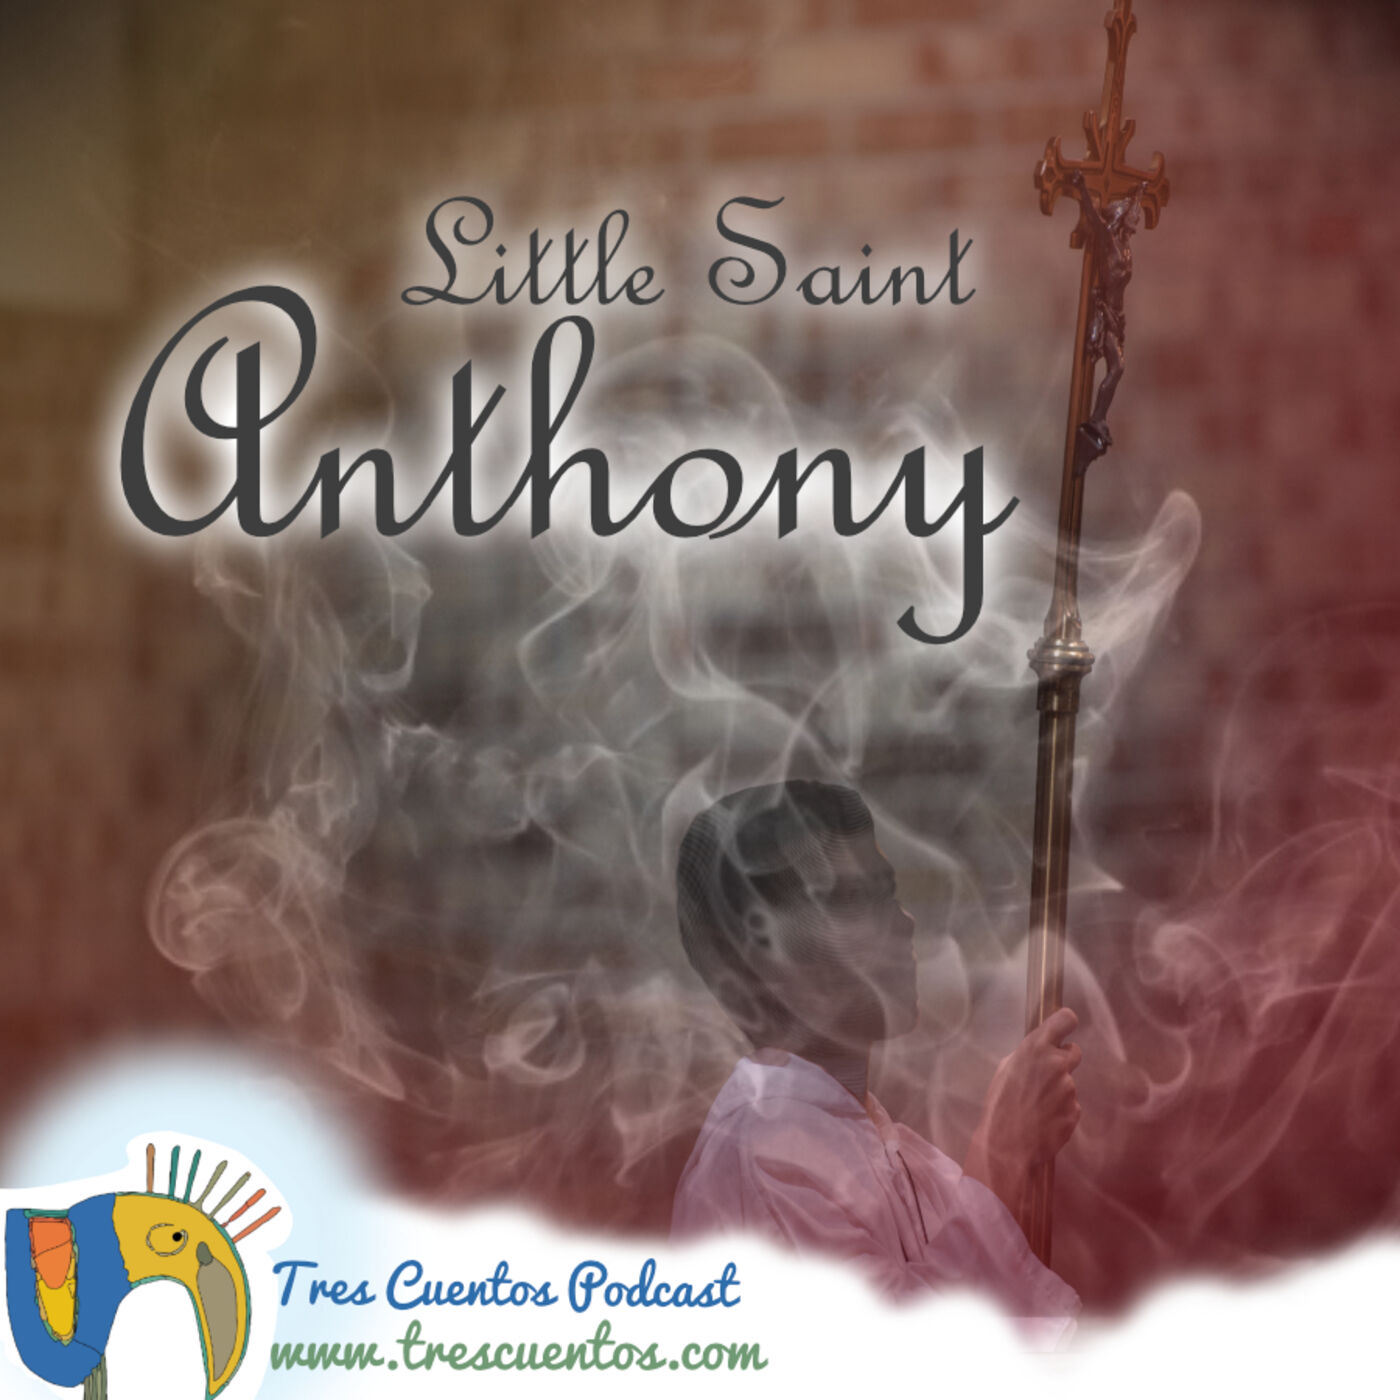 21 - Latino Authors - Little Saint Anthony - Tomas Carrasquilla - Colombia